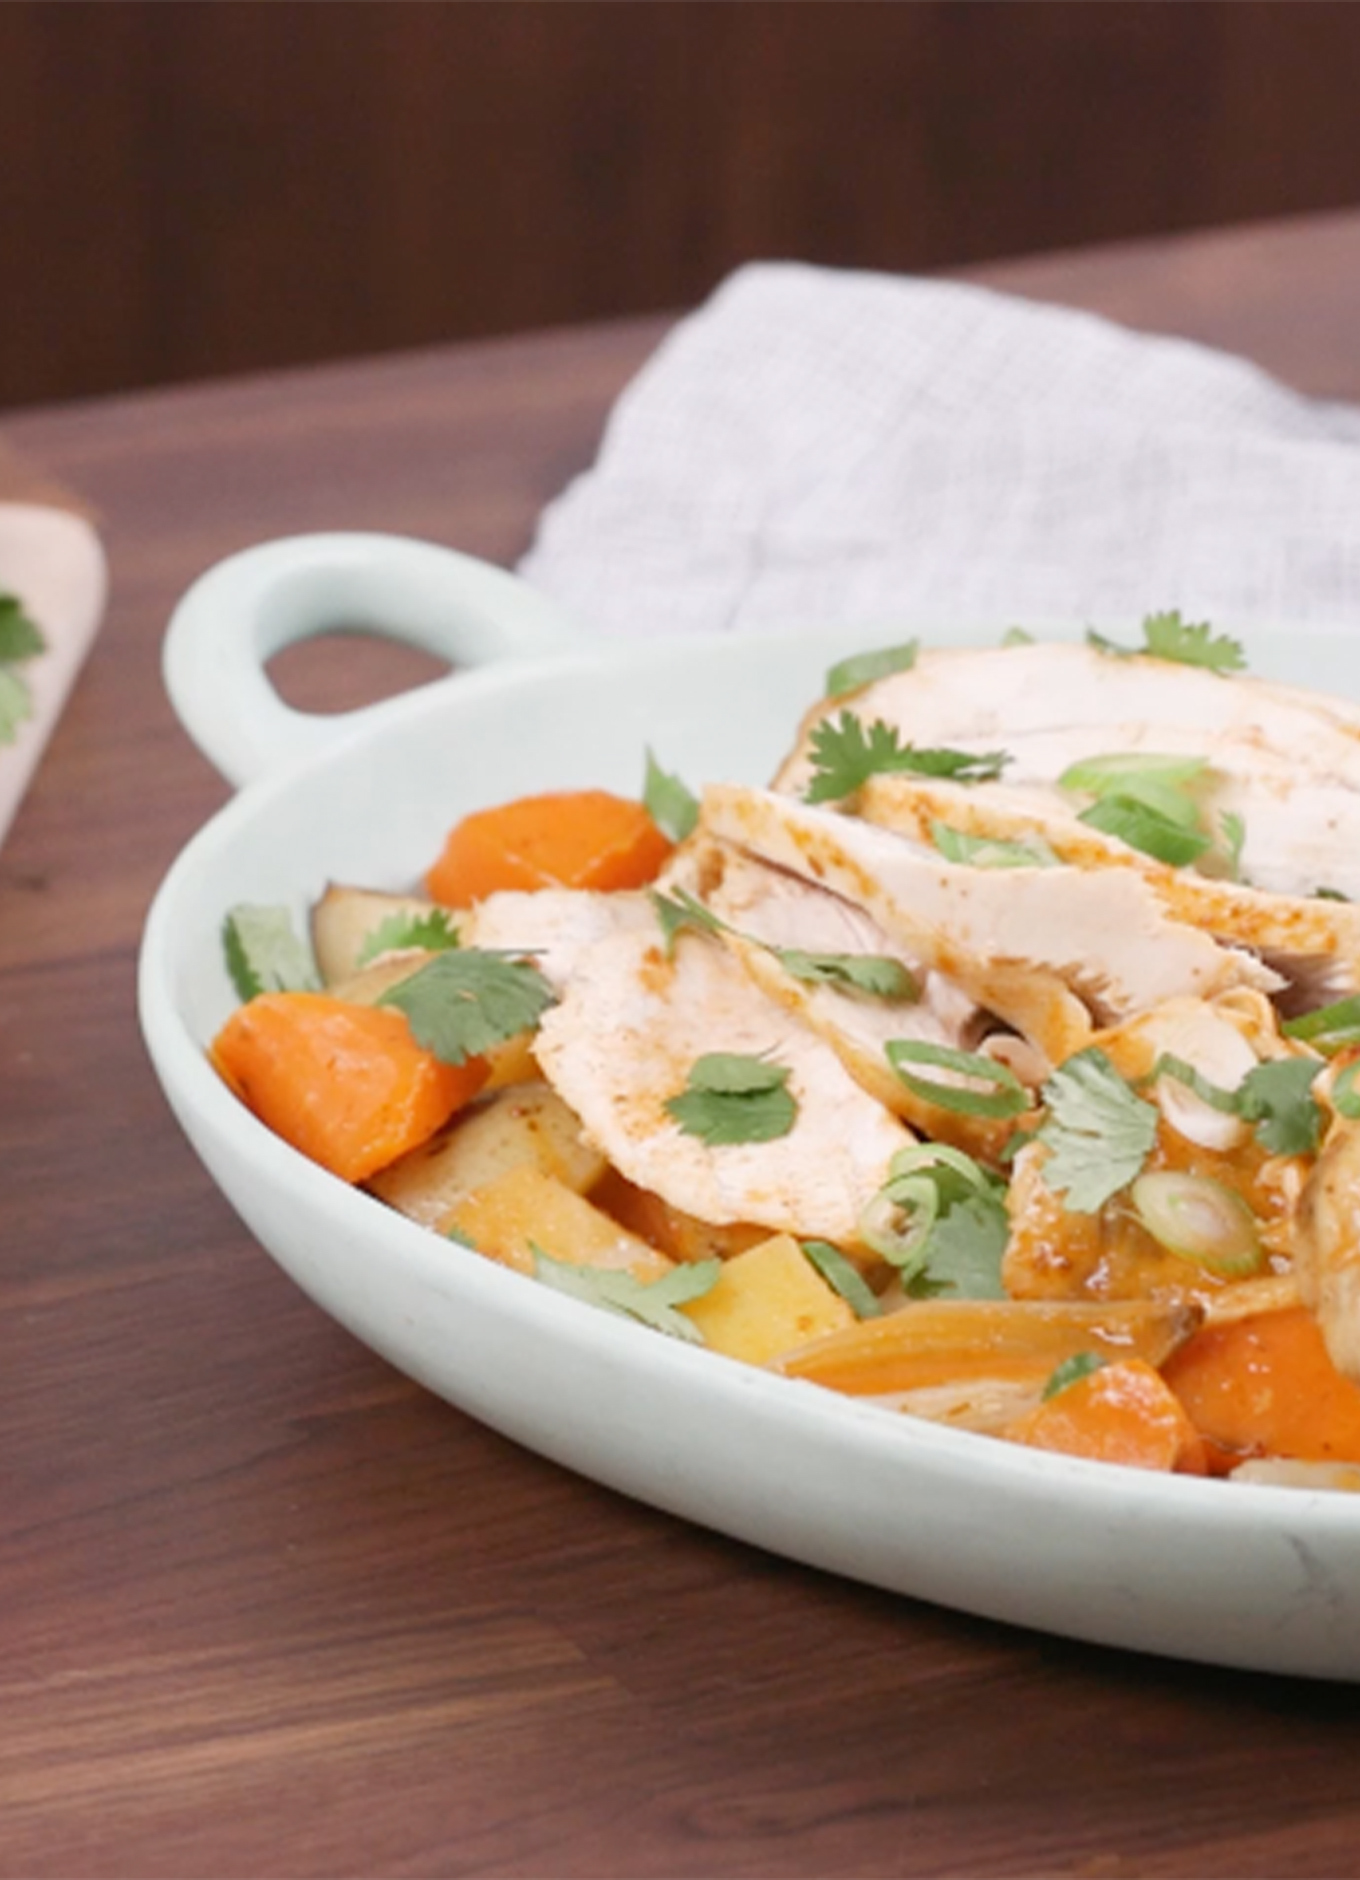 A platter with Thai Roasted Chicken resting on a bed of potatoes, parsnips and shallots